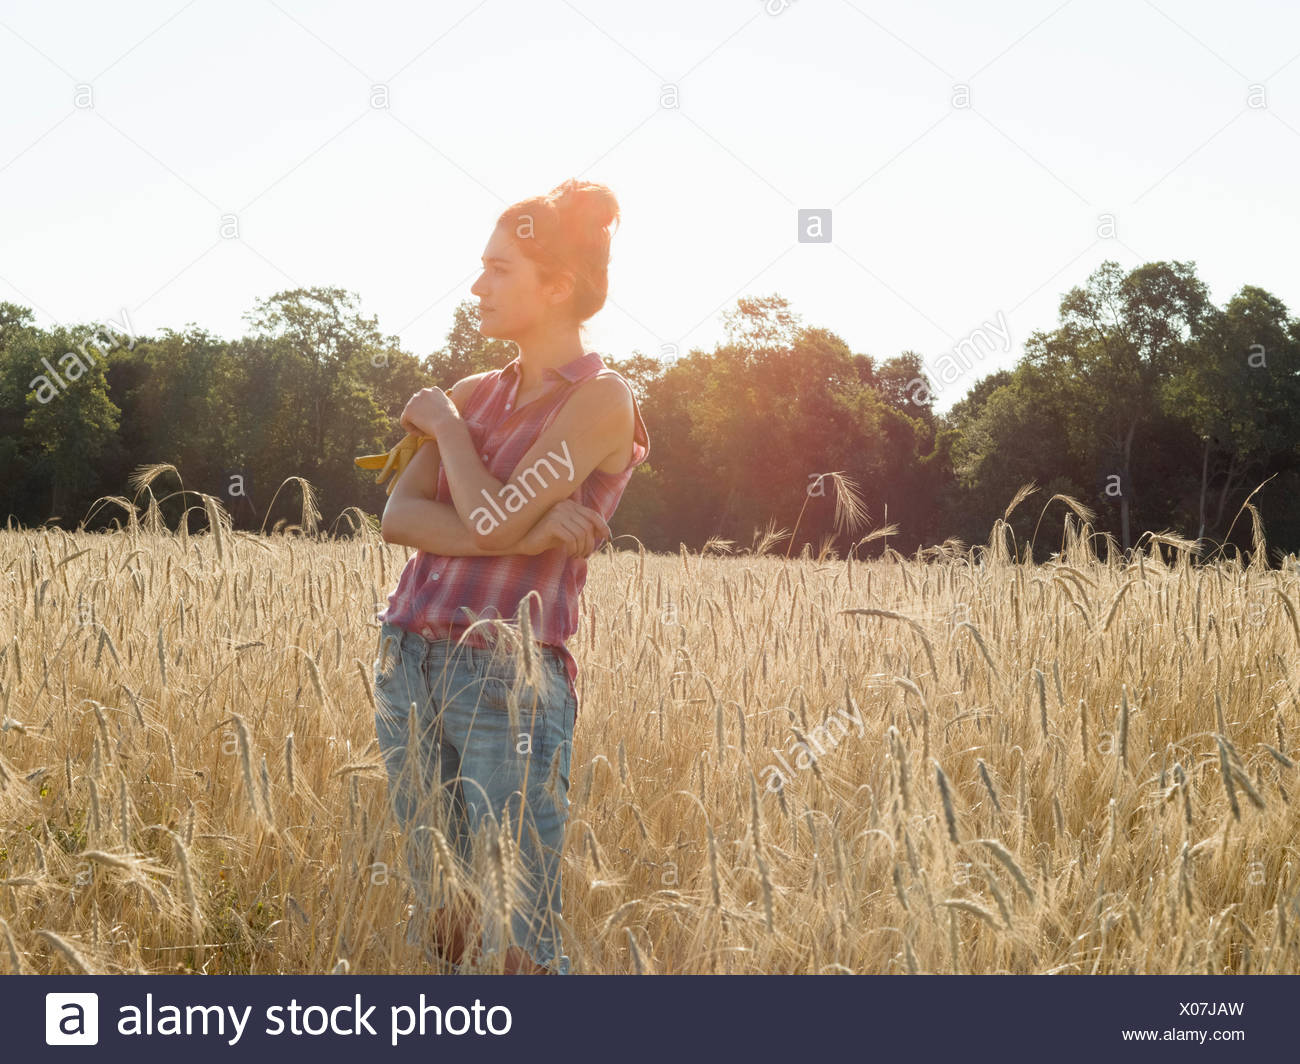 Young woman wearing a checkered shirt standing in a cornfield. - Stock Image